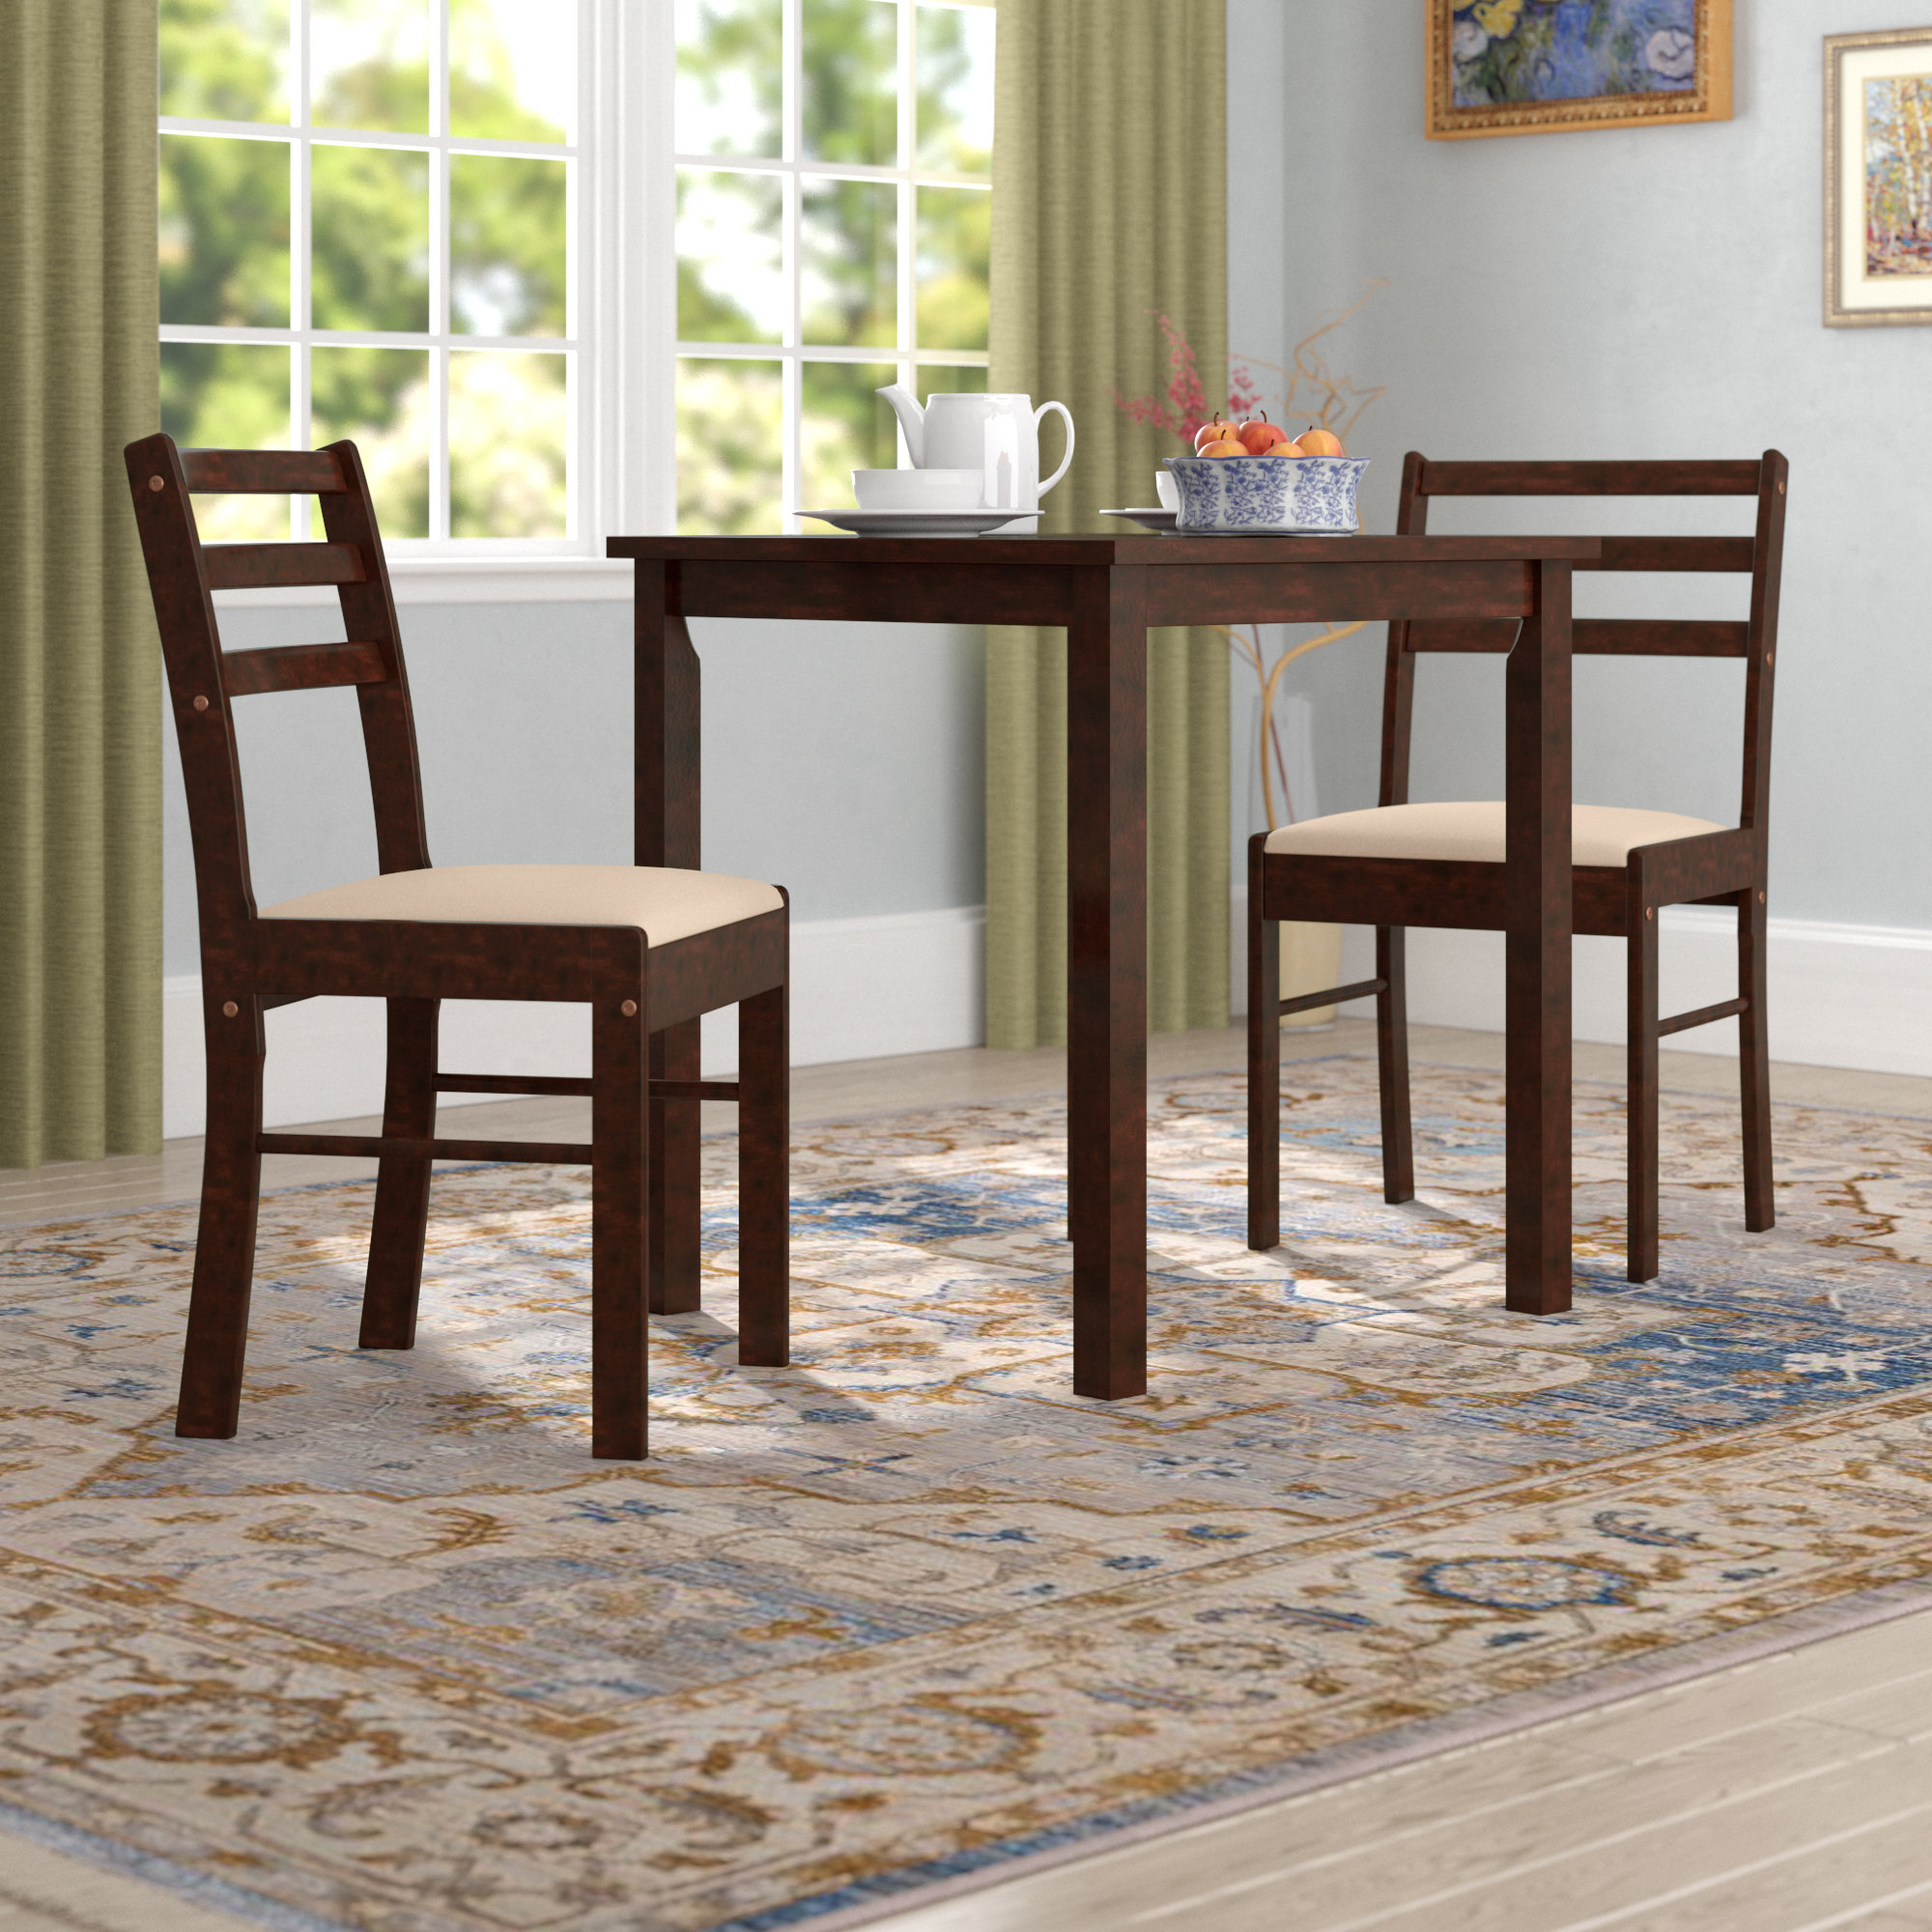 Inspiration about Well Liked Kinsler 3 Piece Bistro Sets Regarding Winston Porter Clinger Pilaster Designs 3 Piece Dining Set & Reviews (#12 of 20)